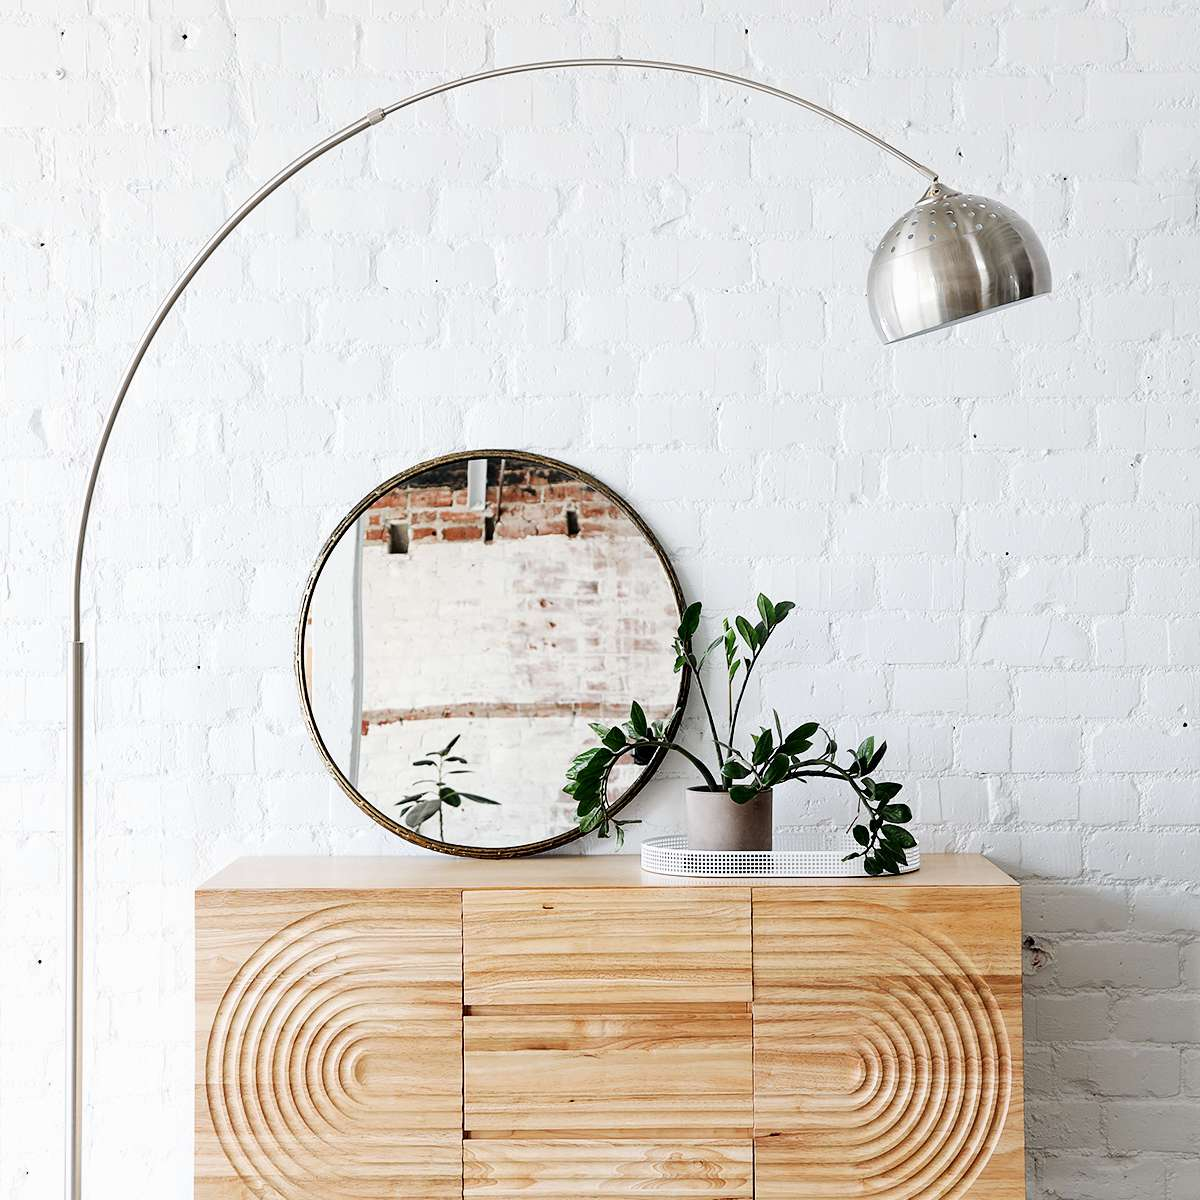 Credenza setup with mirror, arc lamp, and zz plant